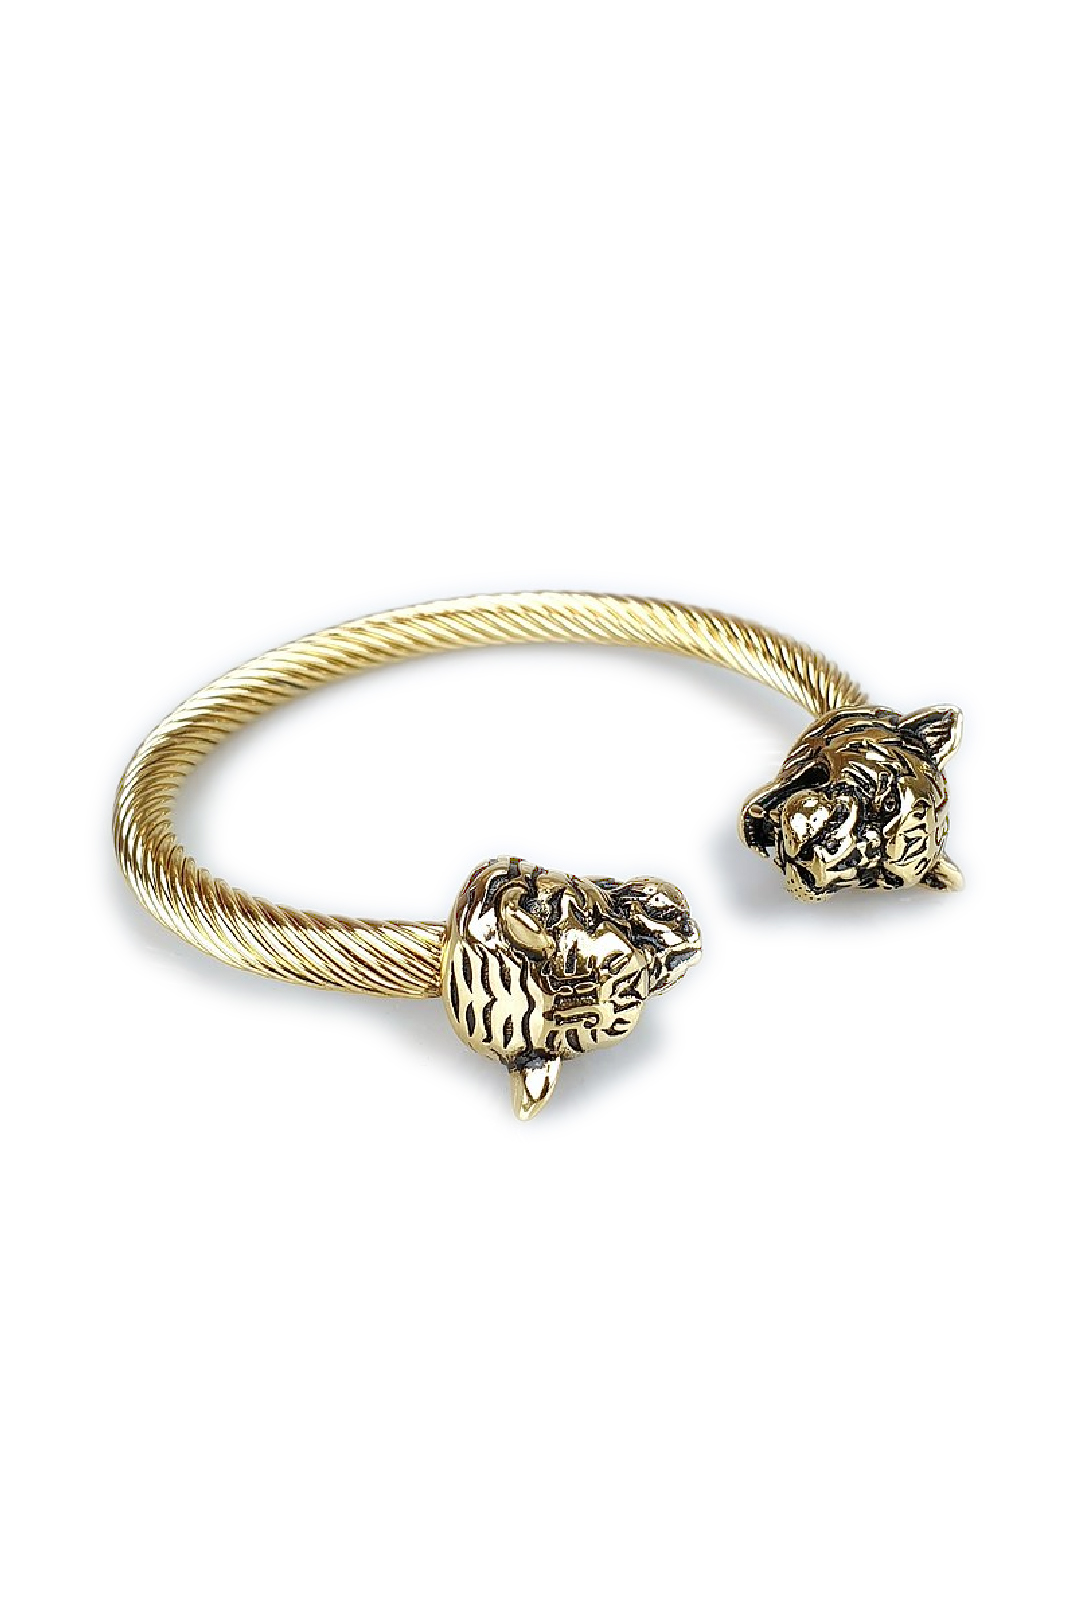 Bracelet Zoran Gold stainless steel